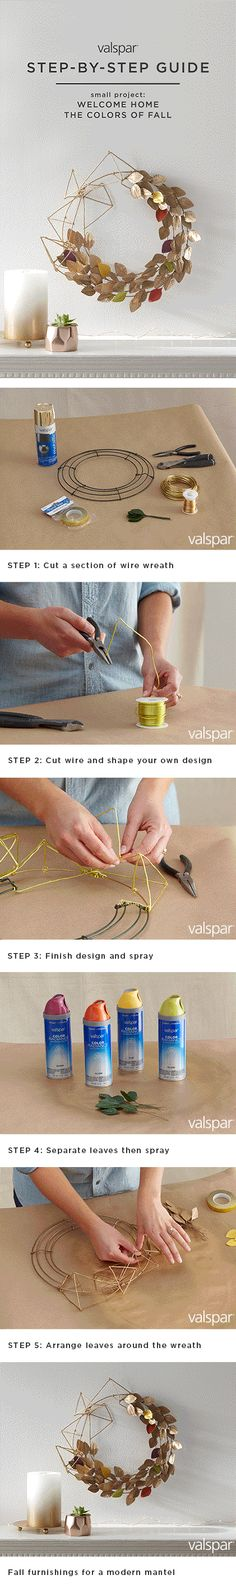 If you're looking for a touch of trendy, this faux fall DIY small project wreath will give you the modern mantel piece you've always wanted. Follow our simple steps so you can welcome home the colors of fall with Valspar Spray Paint. Check out the full step-by-step guide here: https://www.pinterest.com/valsparpaint/fall-diy-wreath/